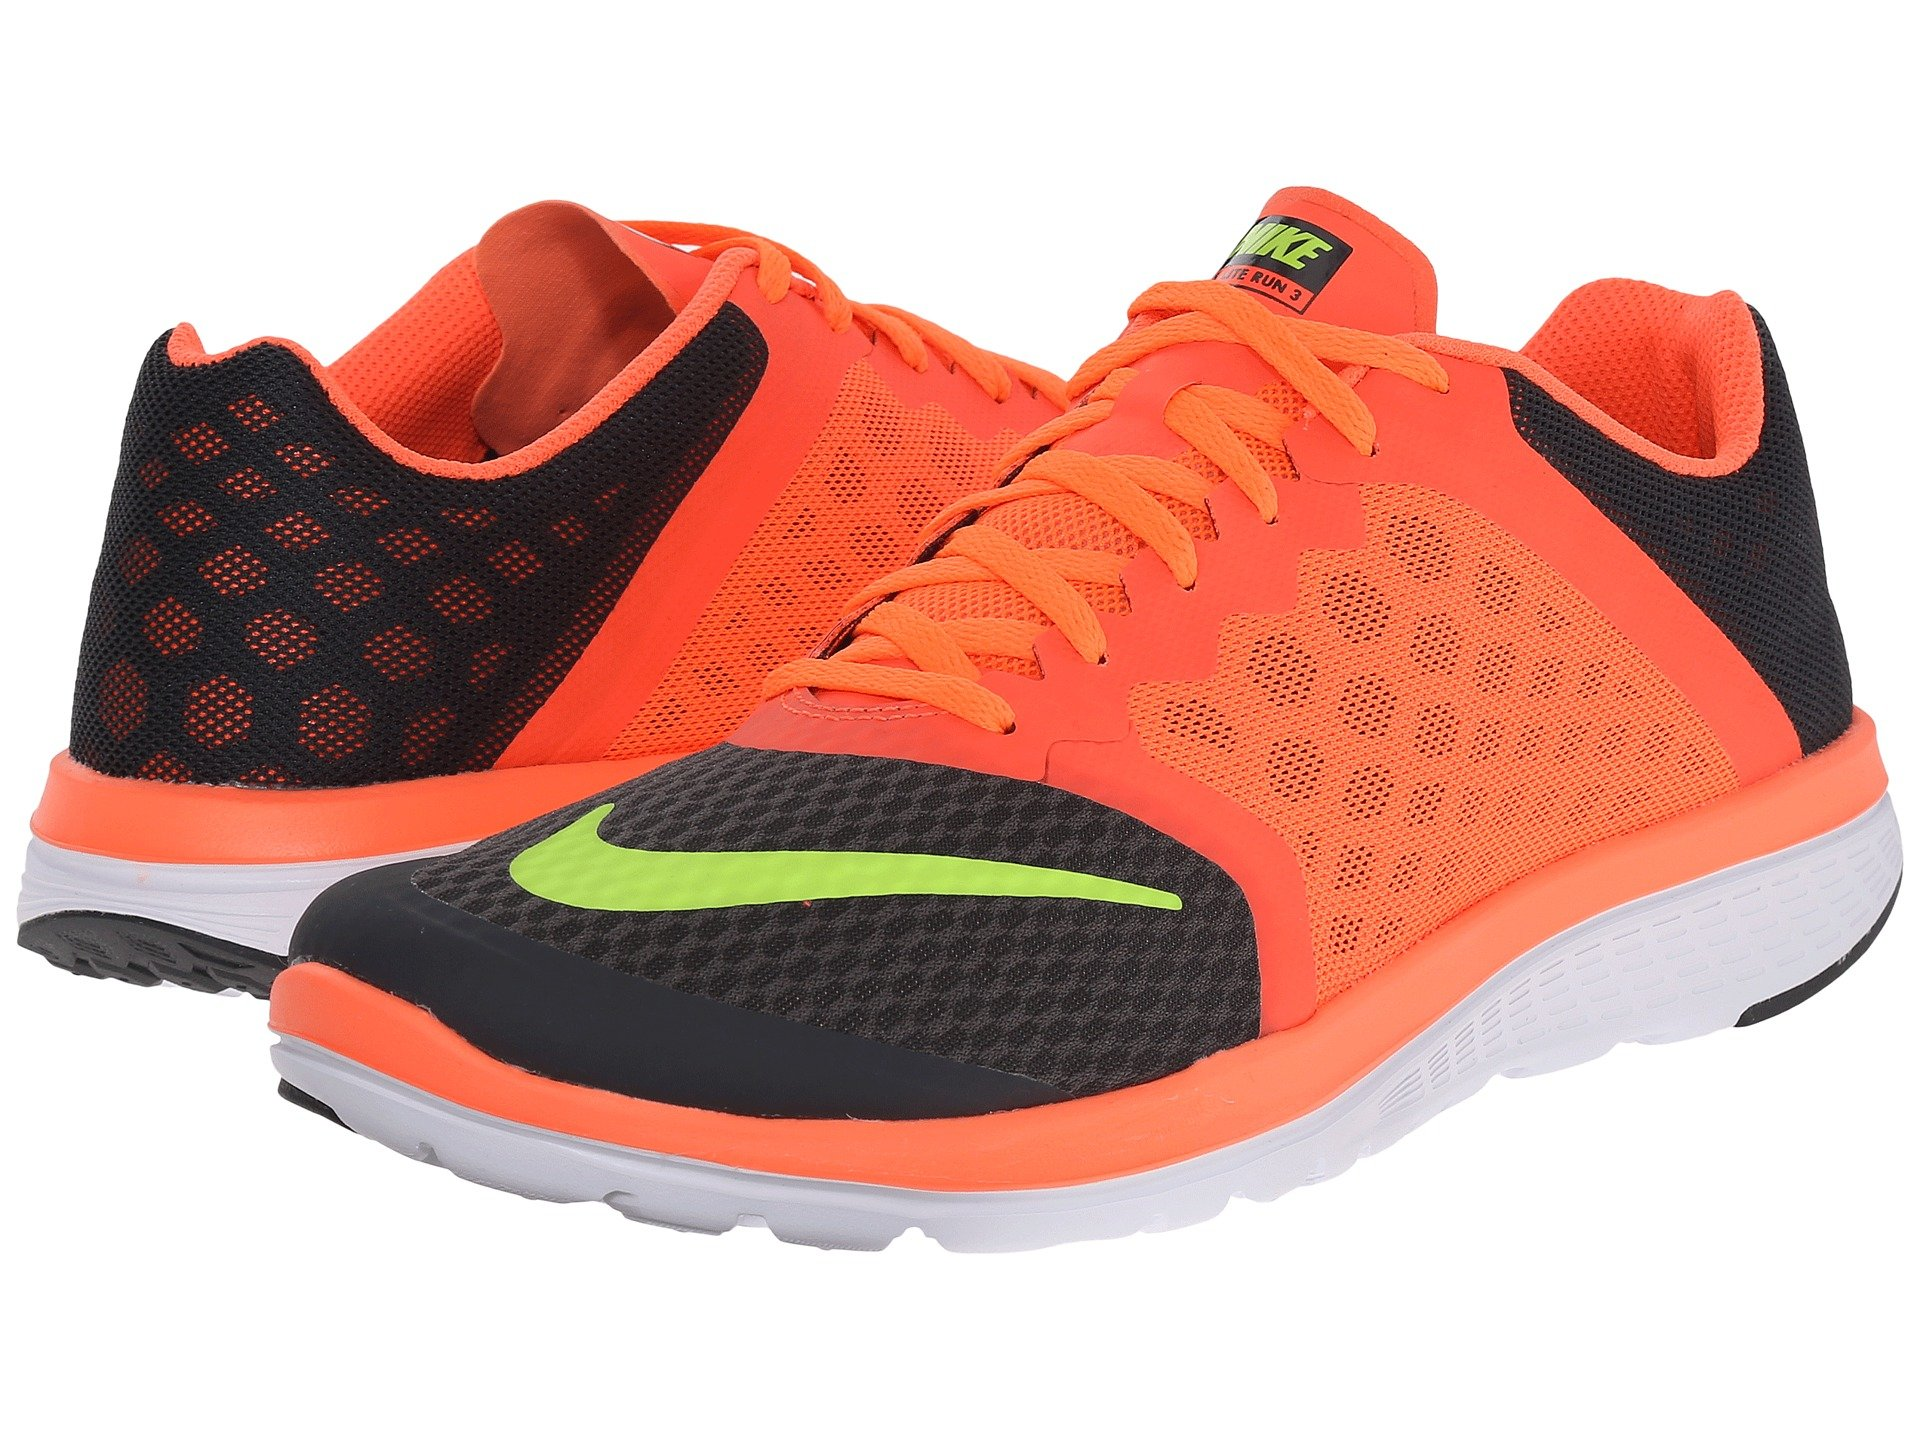 Cheap Nike Free TR Fit 3 Cheap Nikeoutletr